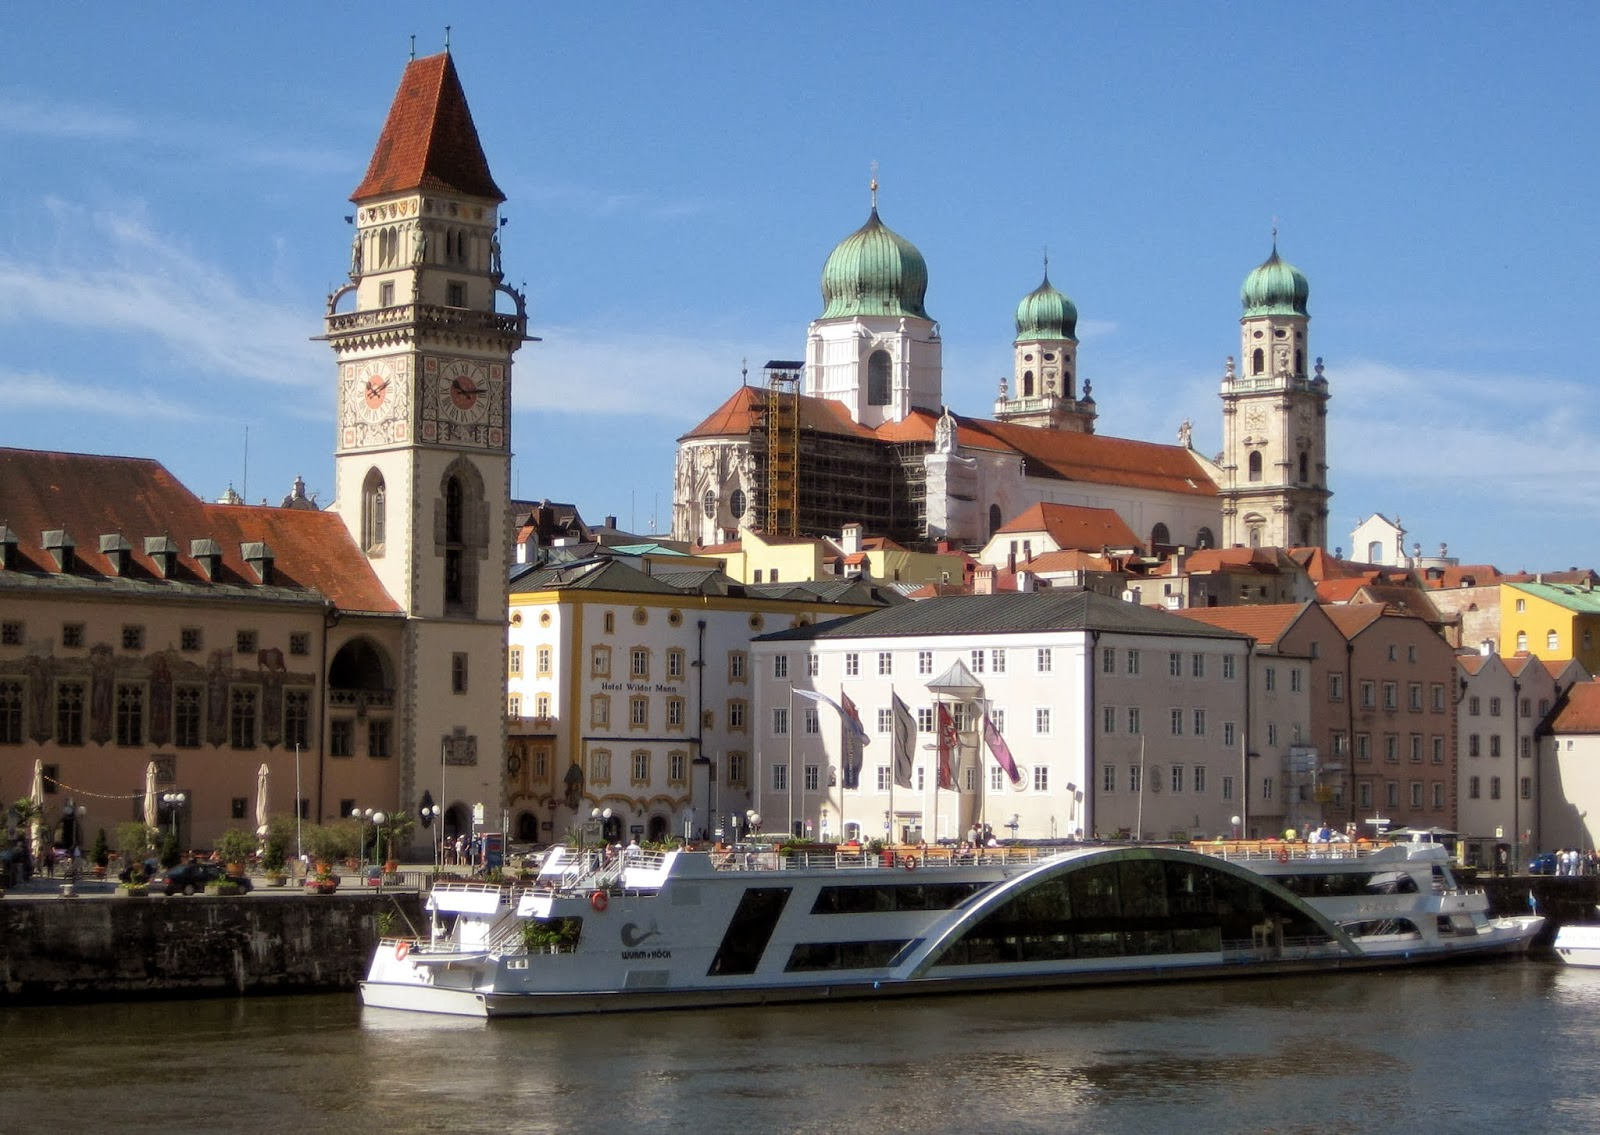 Passau City Hall seen from the Danube River.